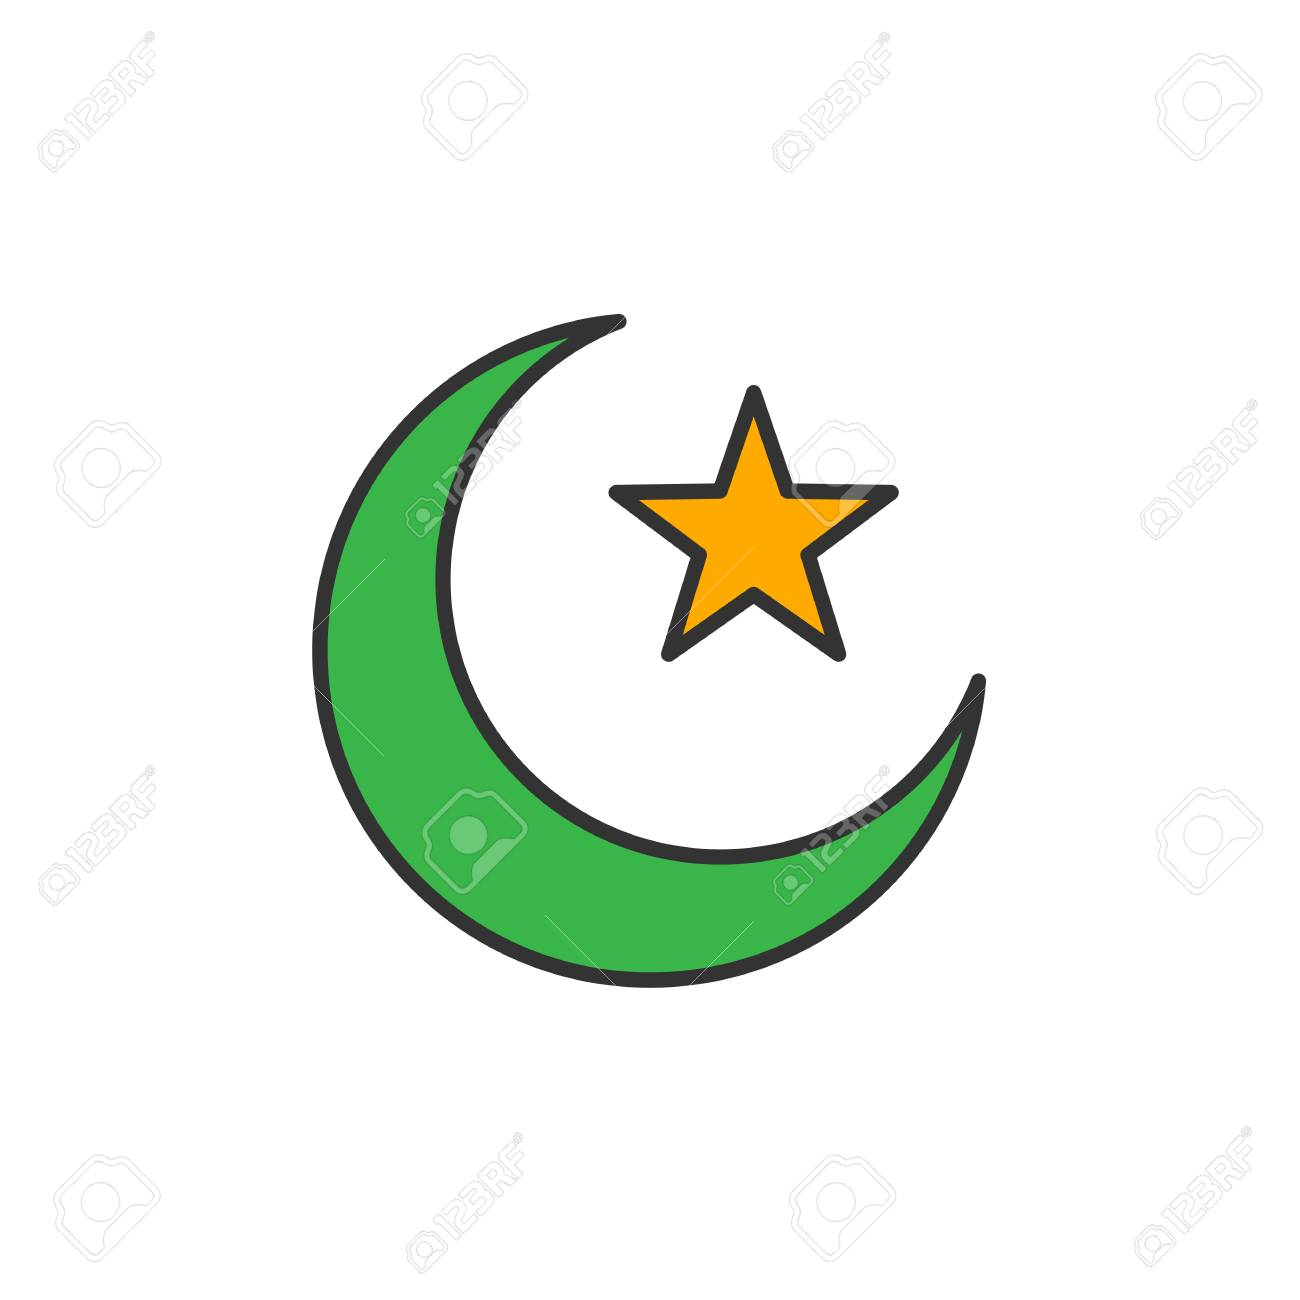 Islam symbol  Crescent moon and star  Simple monoline icon style